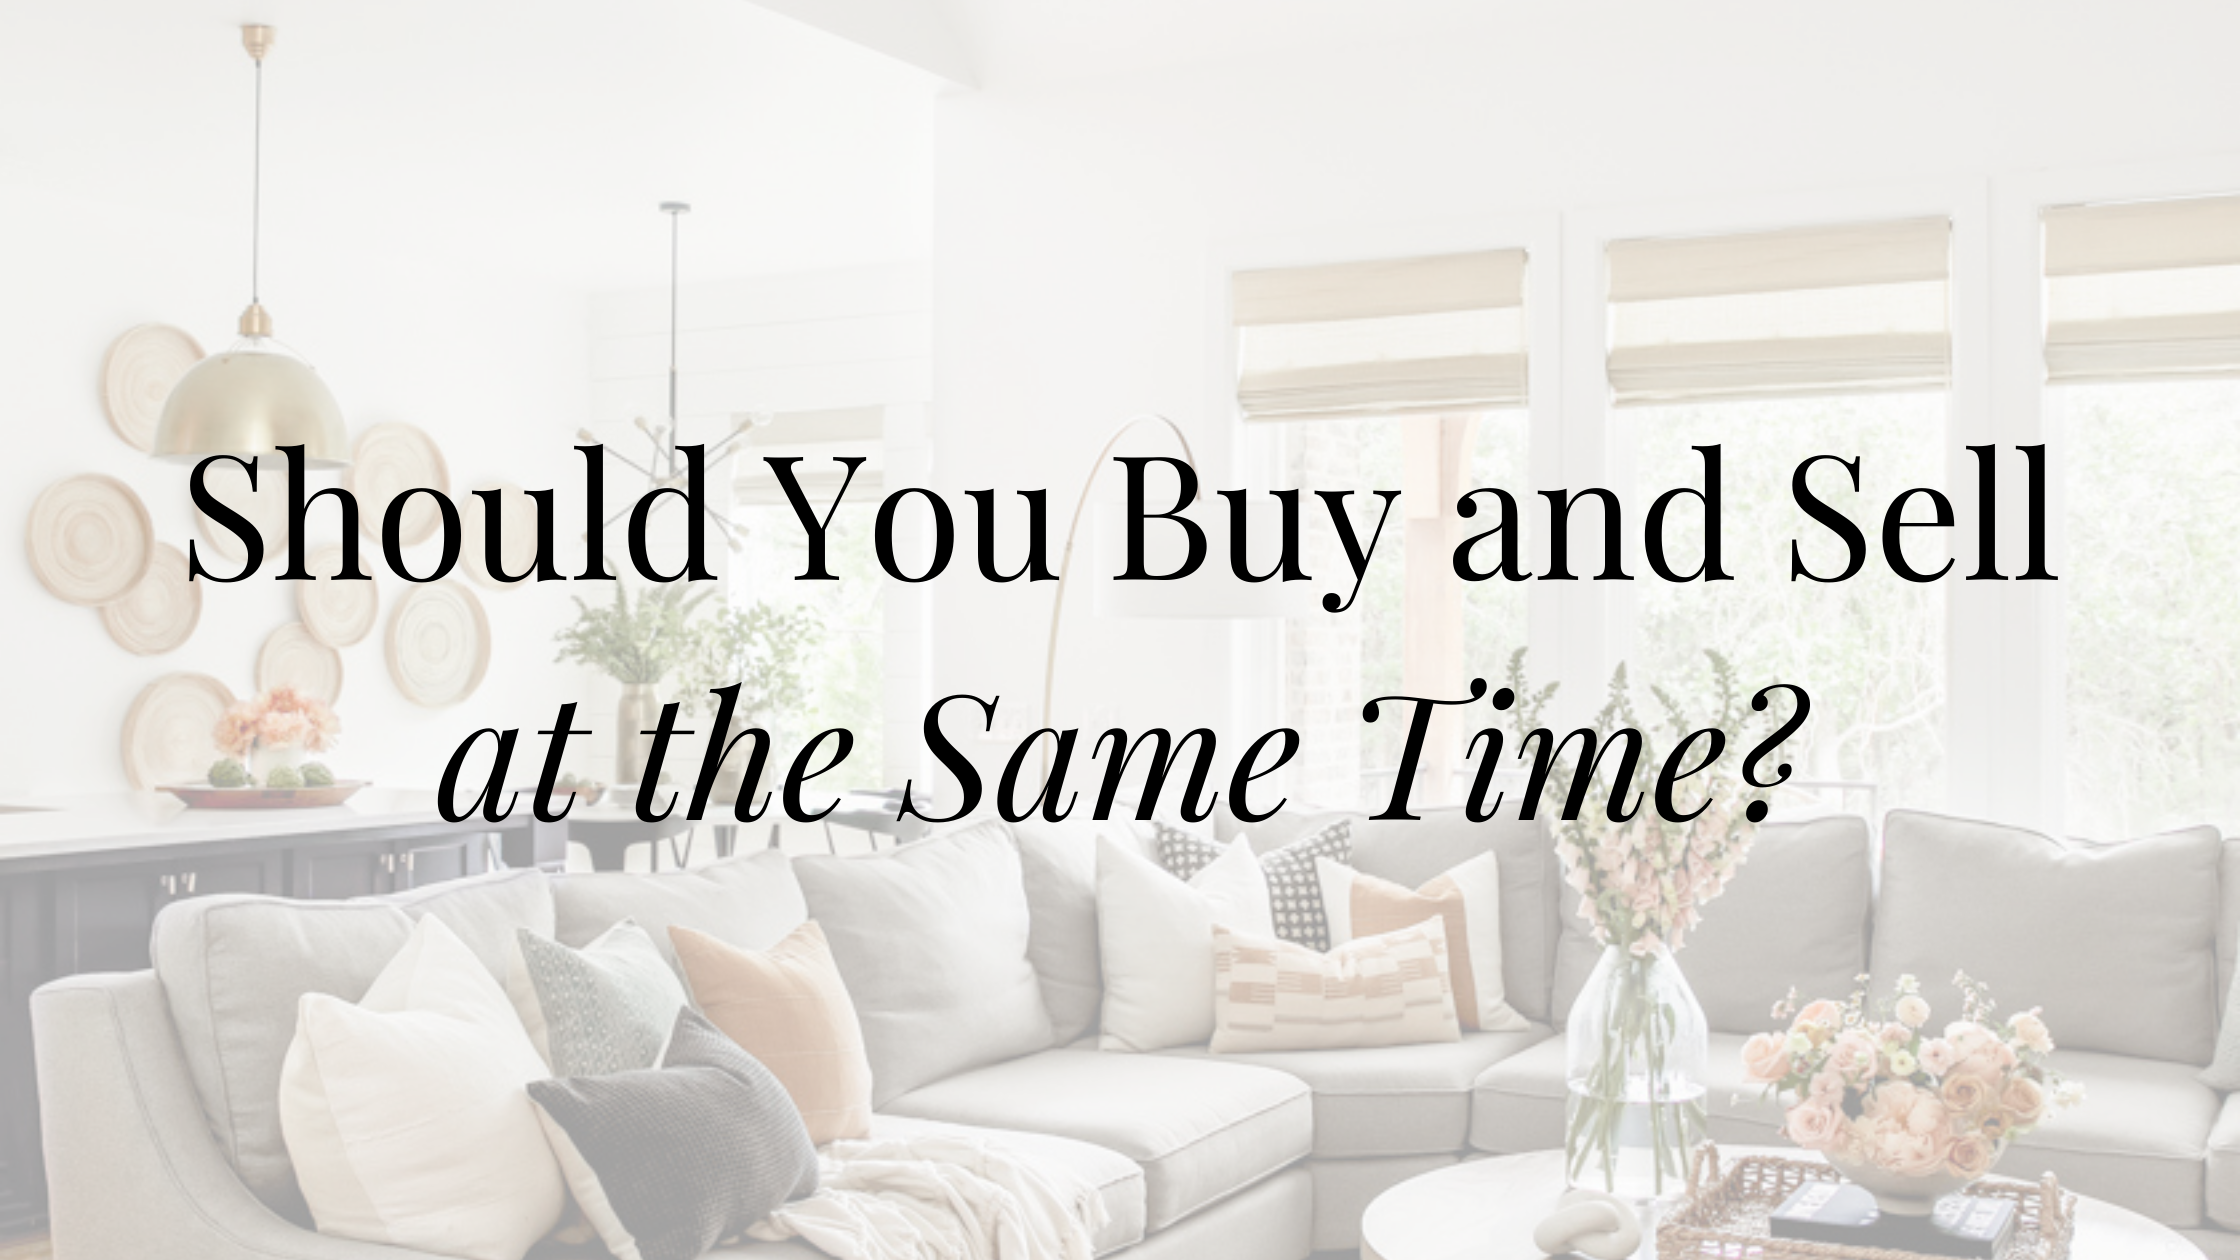 Should You Buy and Sell at the Same Time?